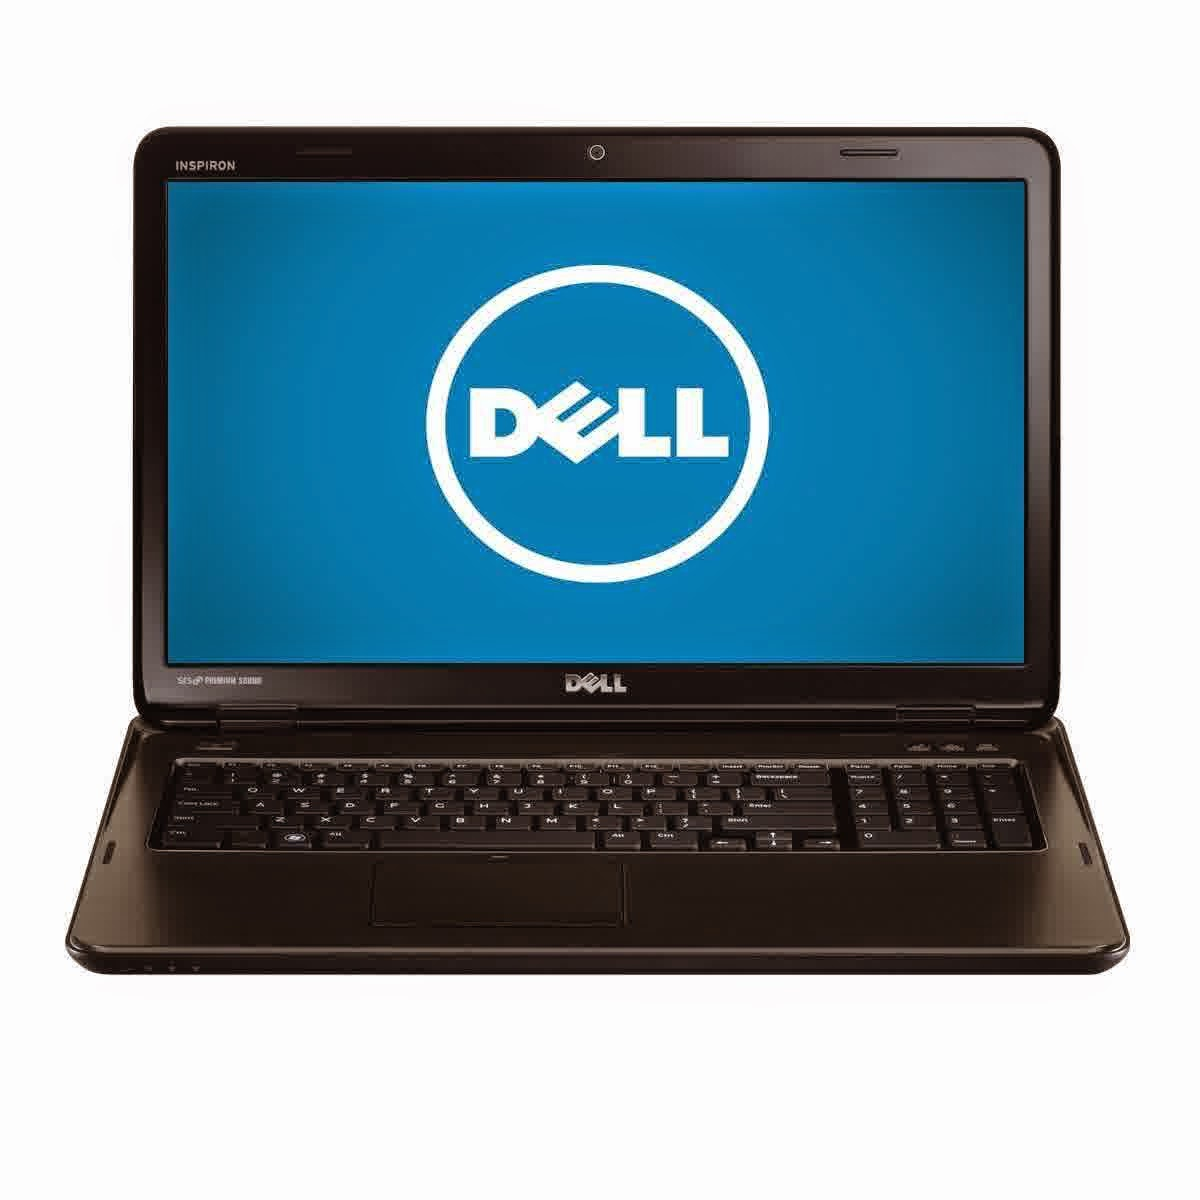 Dell latitude e5440 drivers for windows 7.